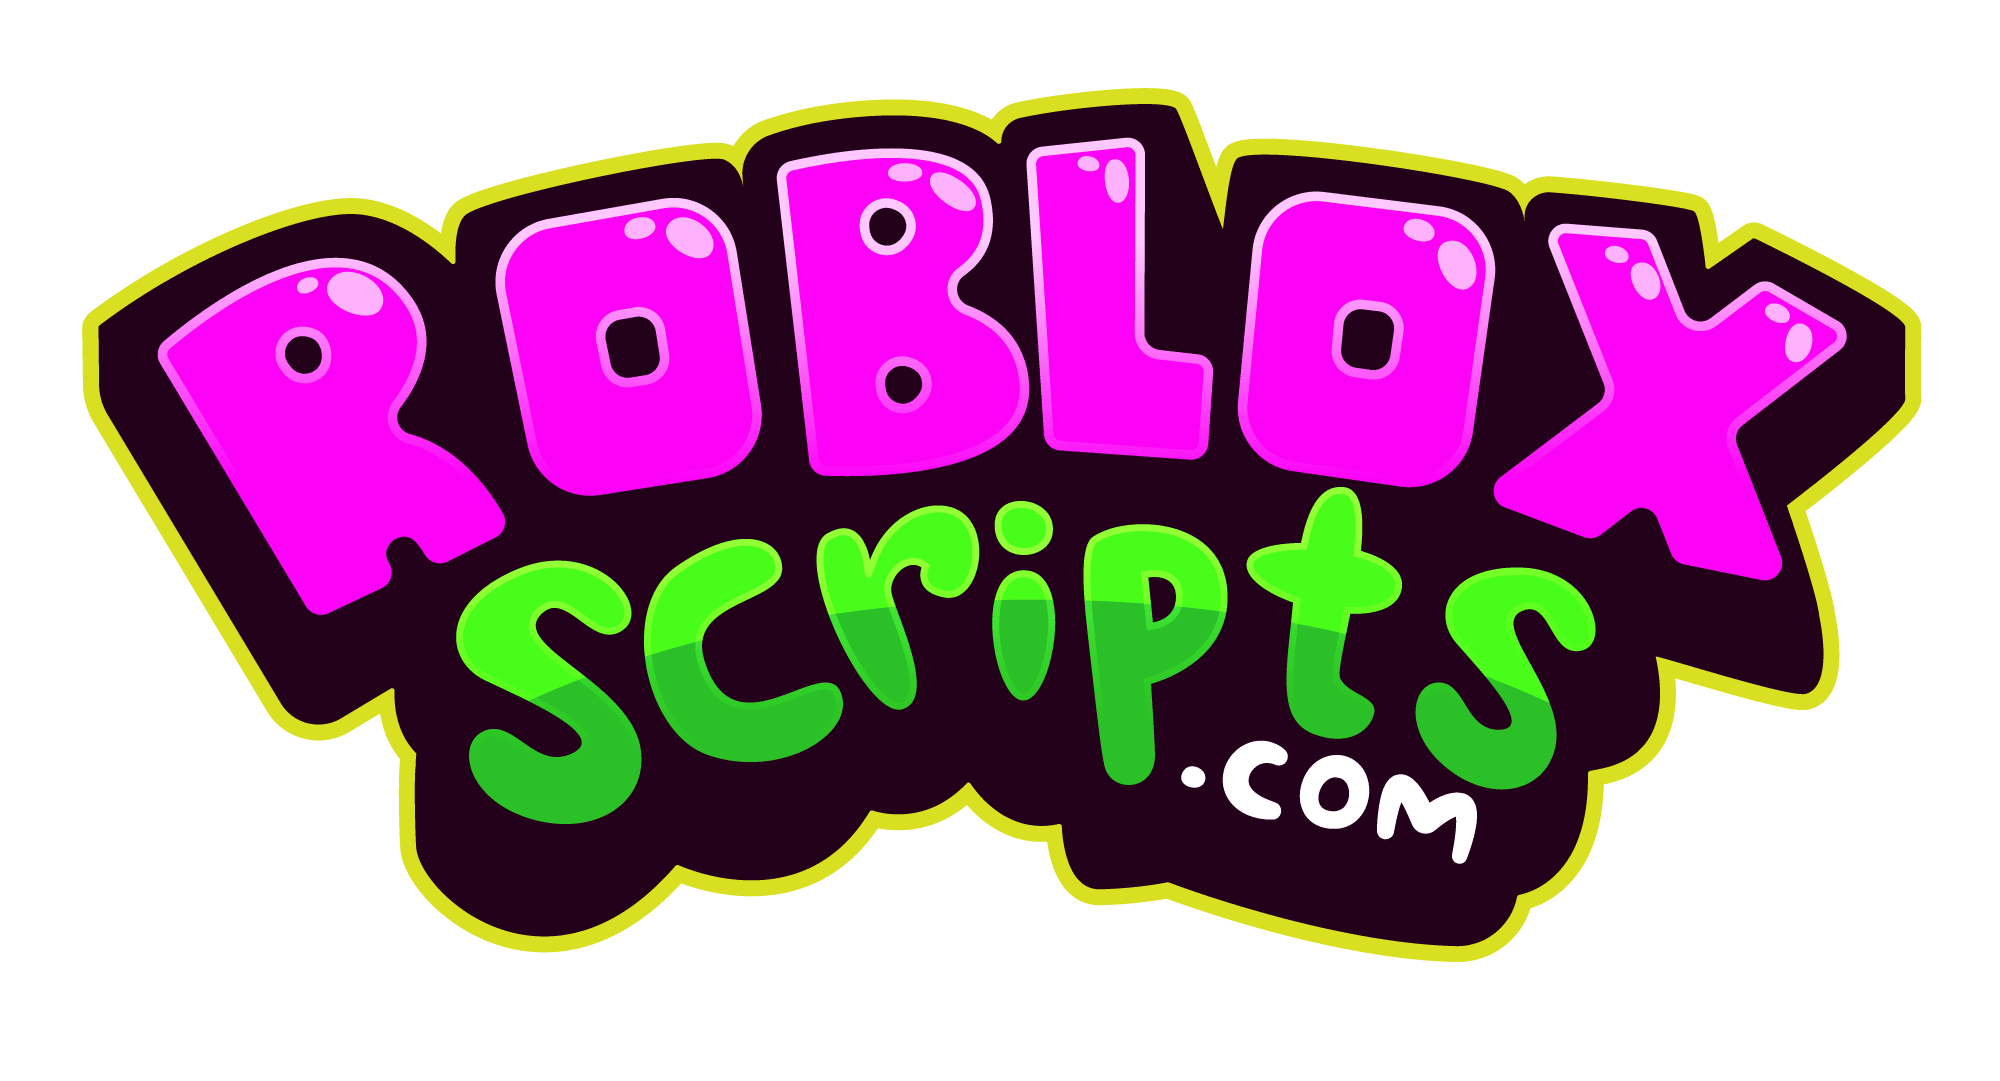 Da Hood Script Roblox 2020 Scripts Robloxscripts Com The 1 Source For Roblox Scripts